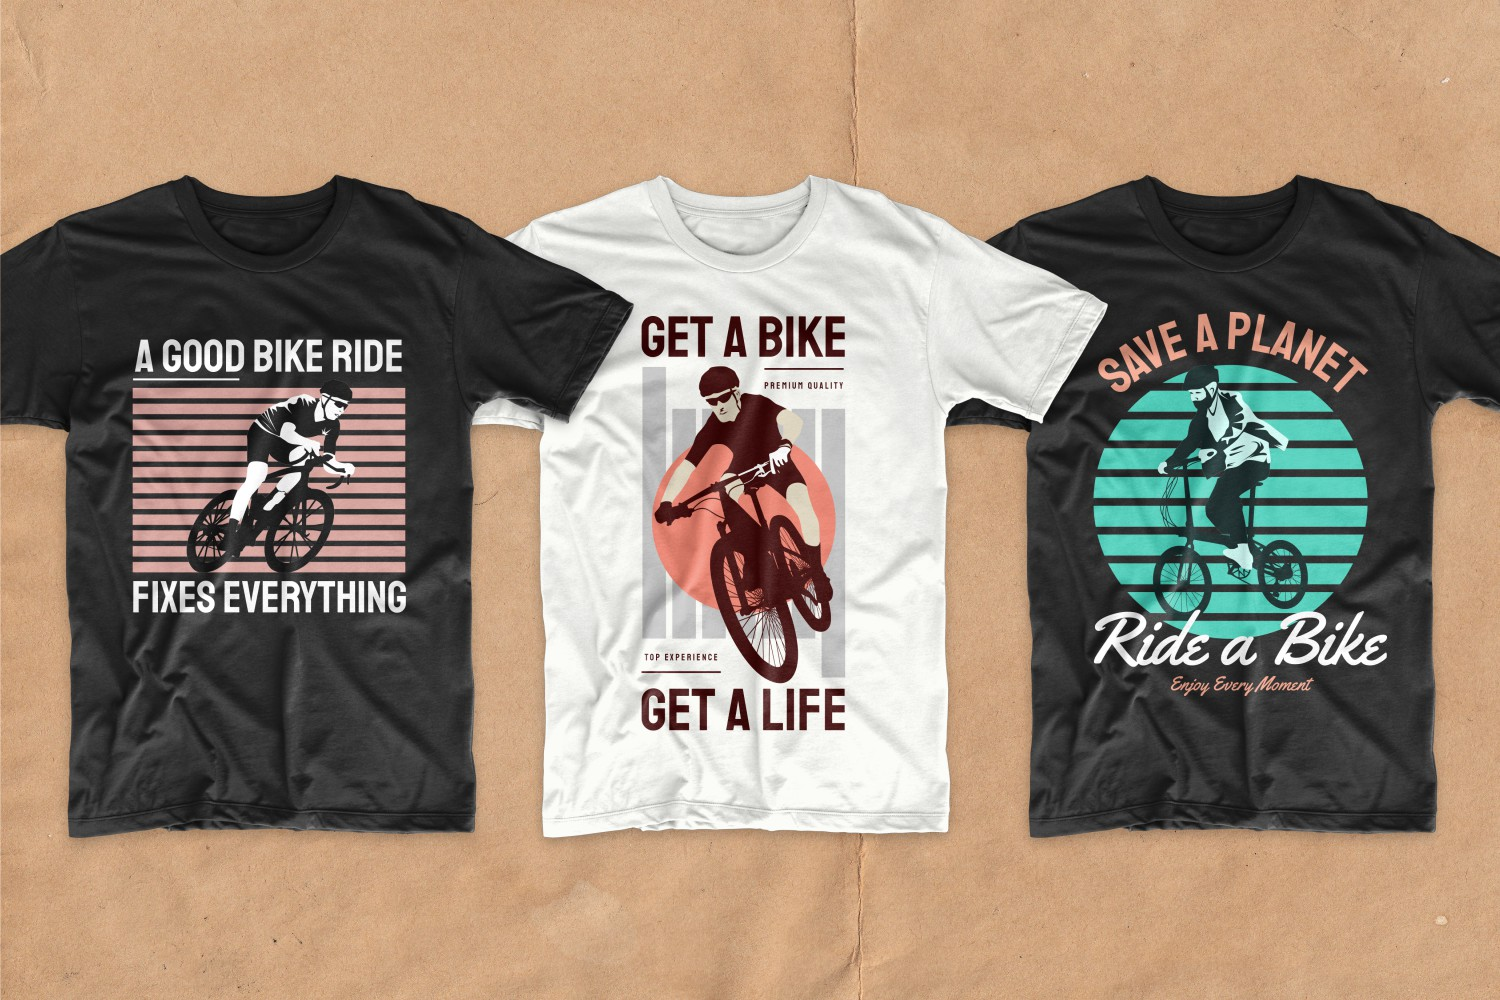 Three T-shirts in a classic fit with a bold design and images of guys on bicycles.